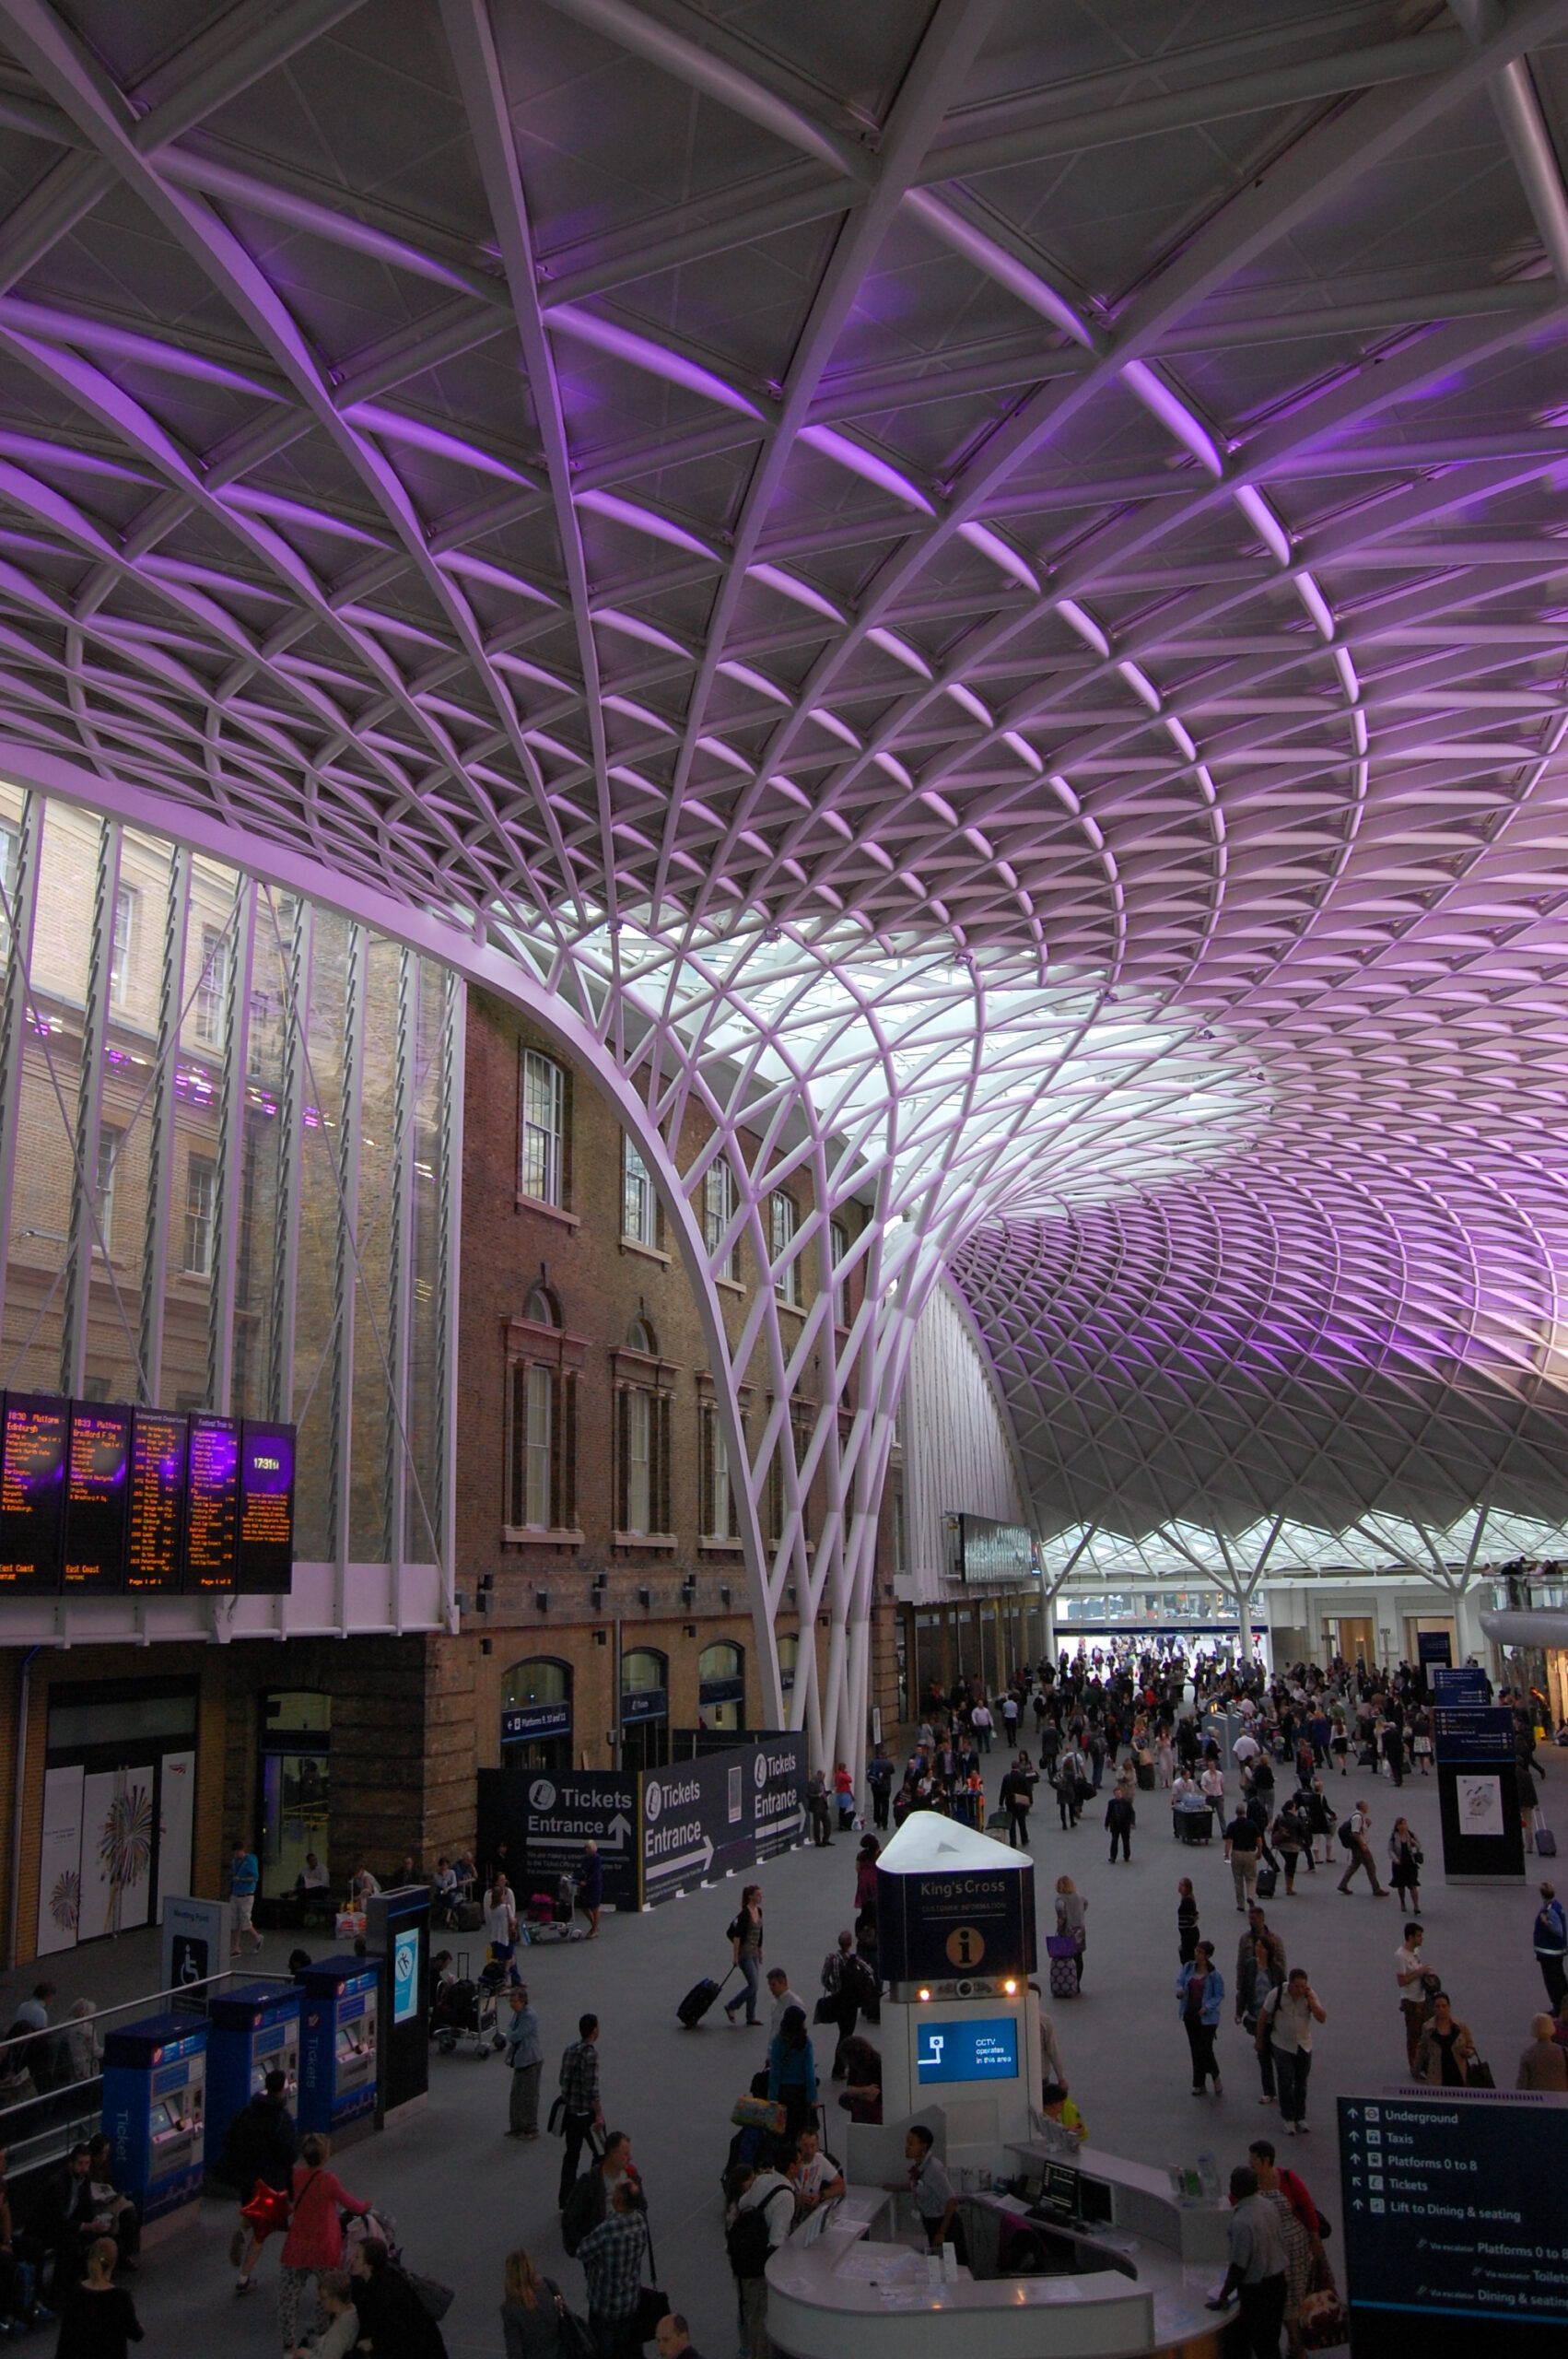 The transformation of King's Cross